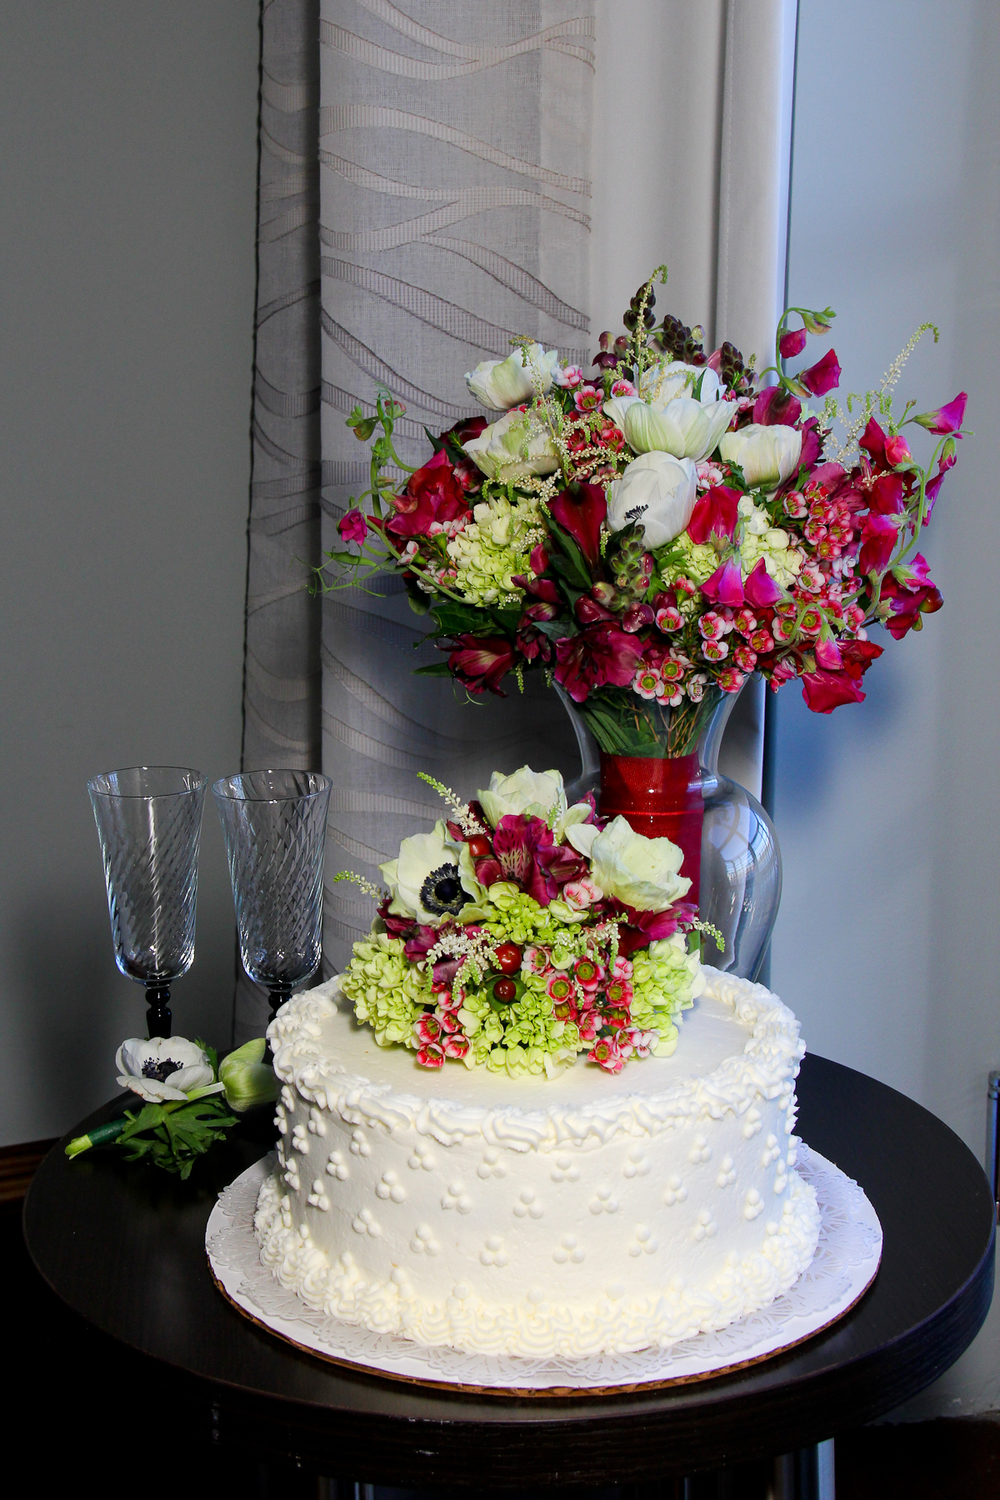 Elope to Savannah Flowers bride's bouquet and wedding cake, elope, destination wedding cake